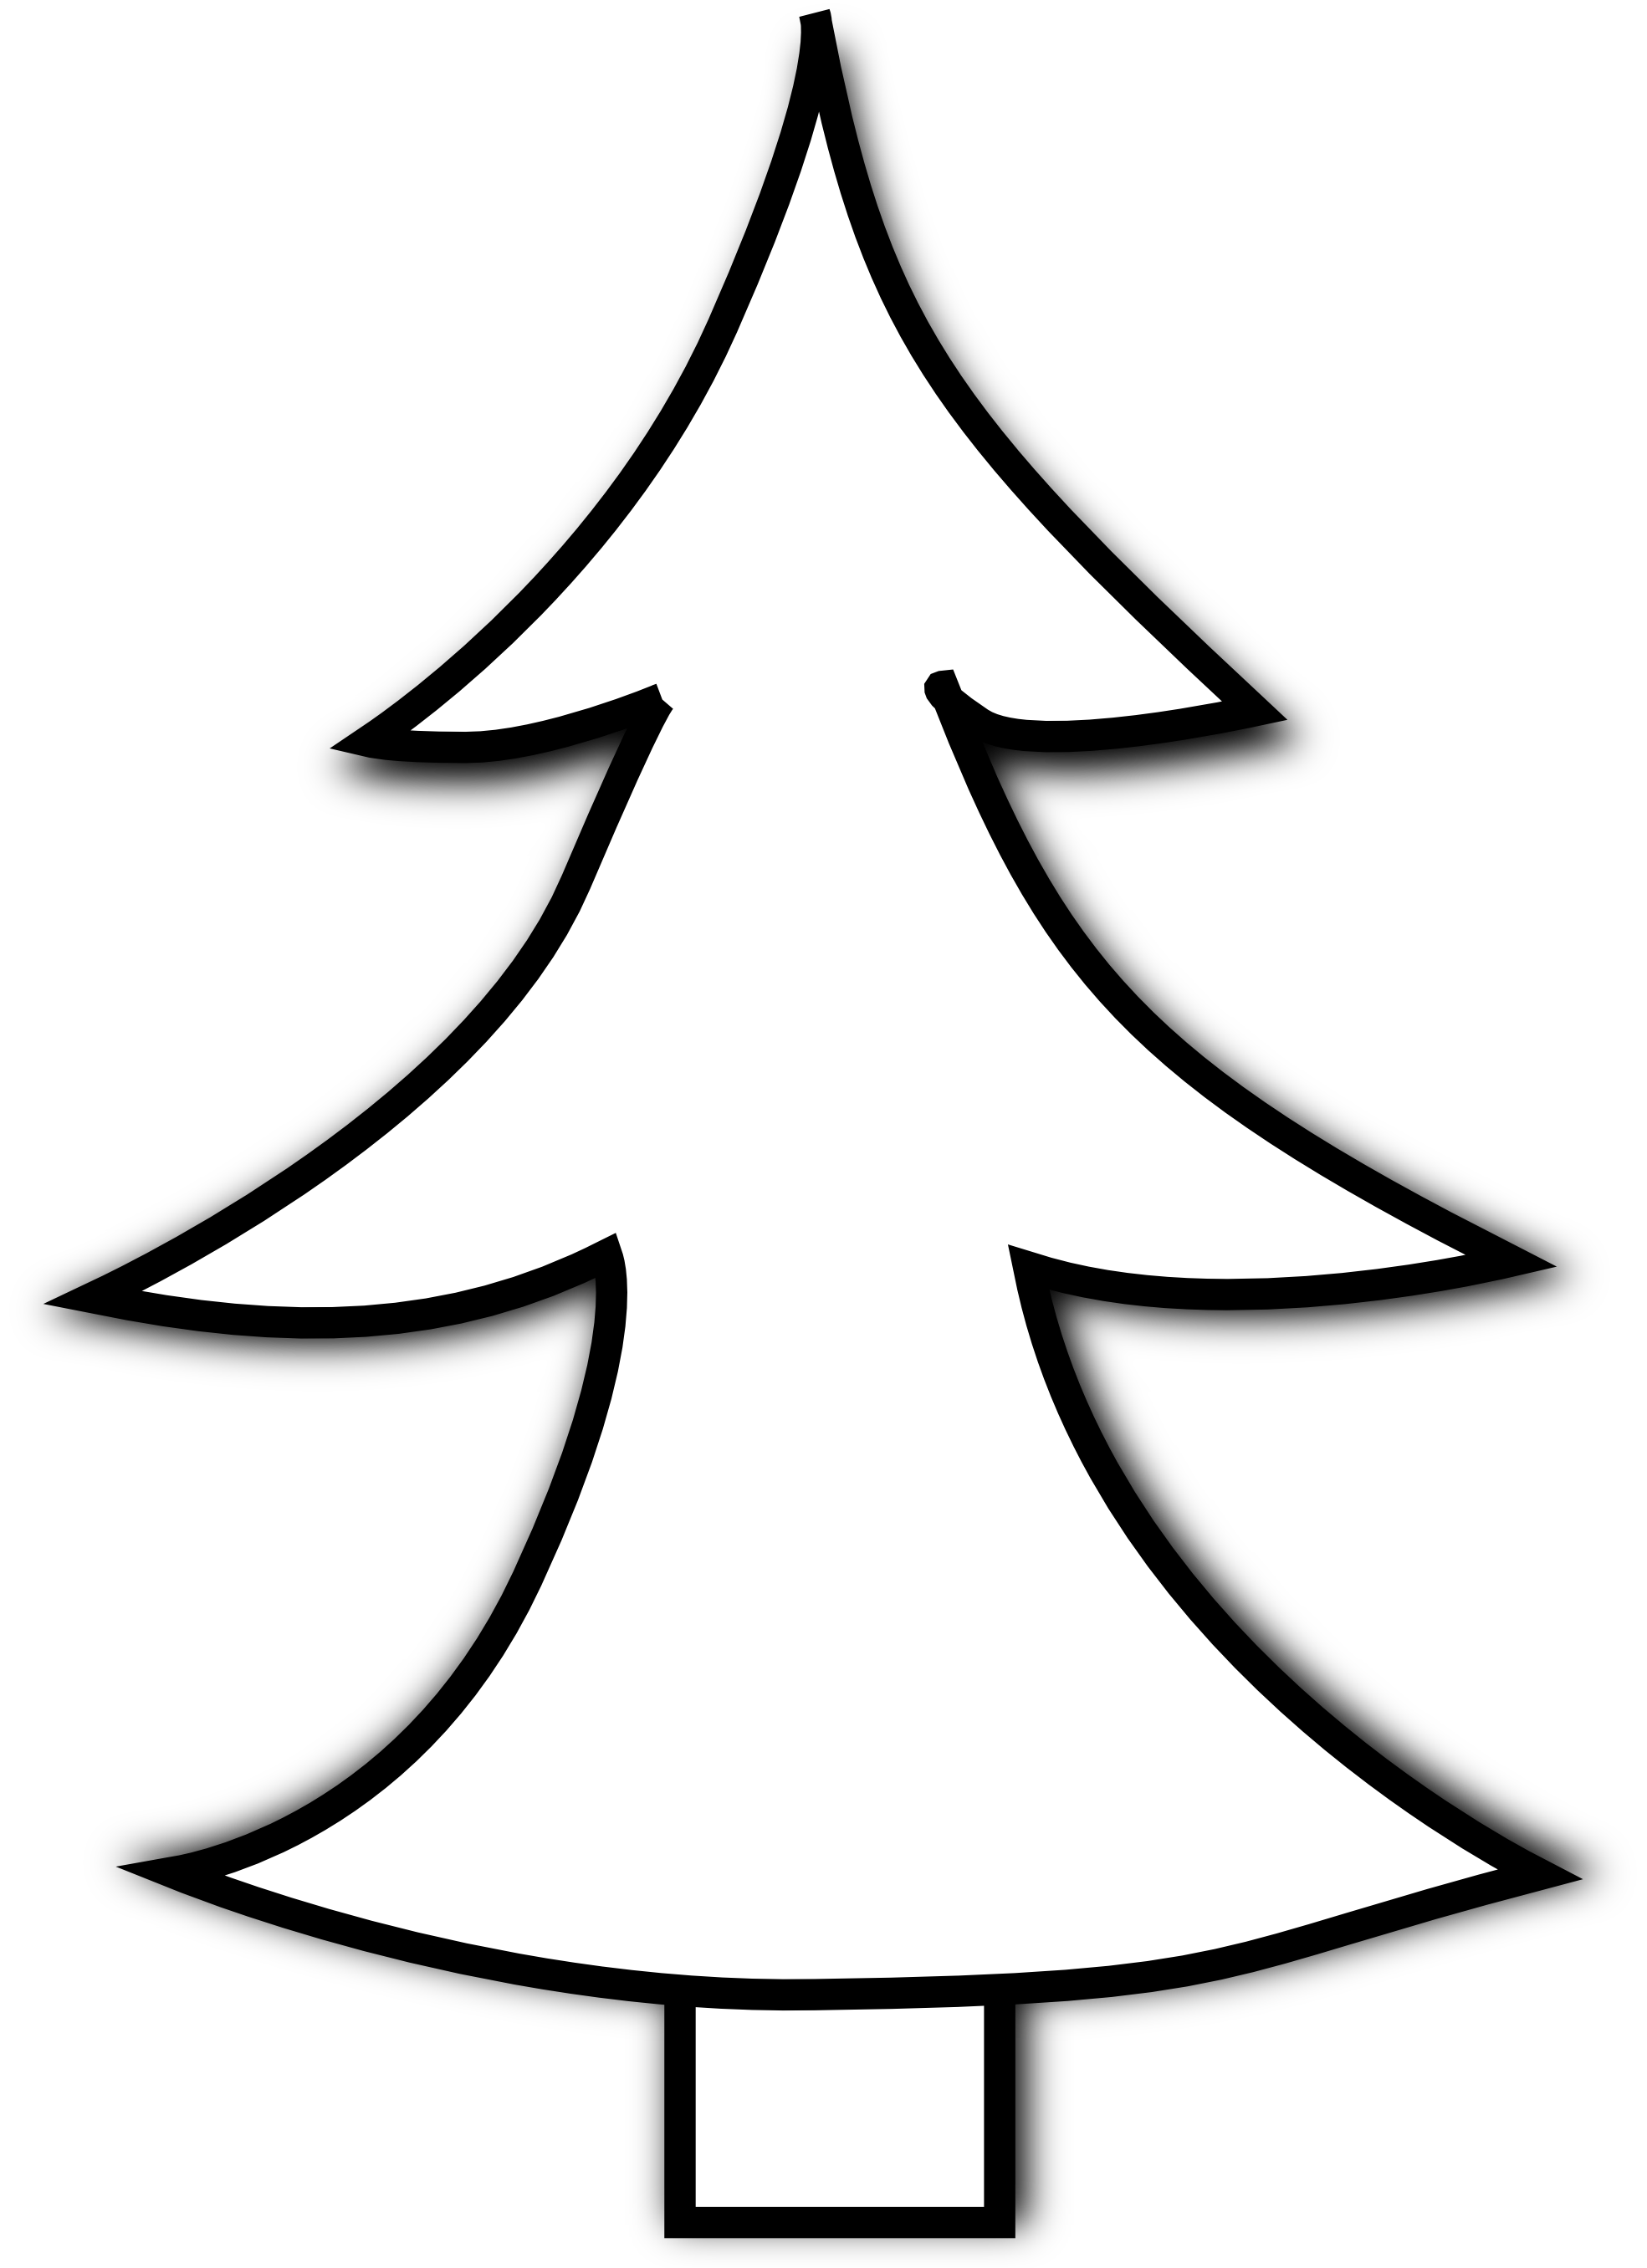 Best christmas tree clipart black and white 14636 for Free online drawing